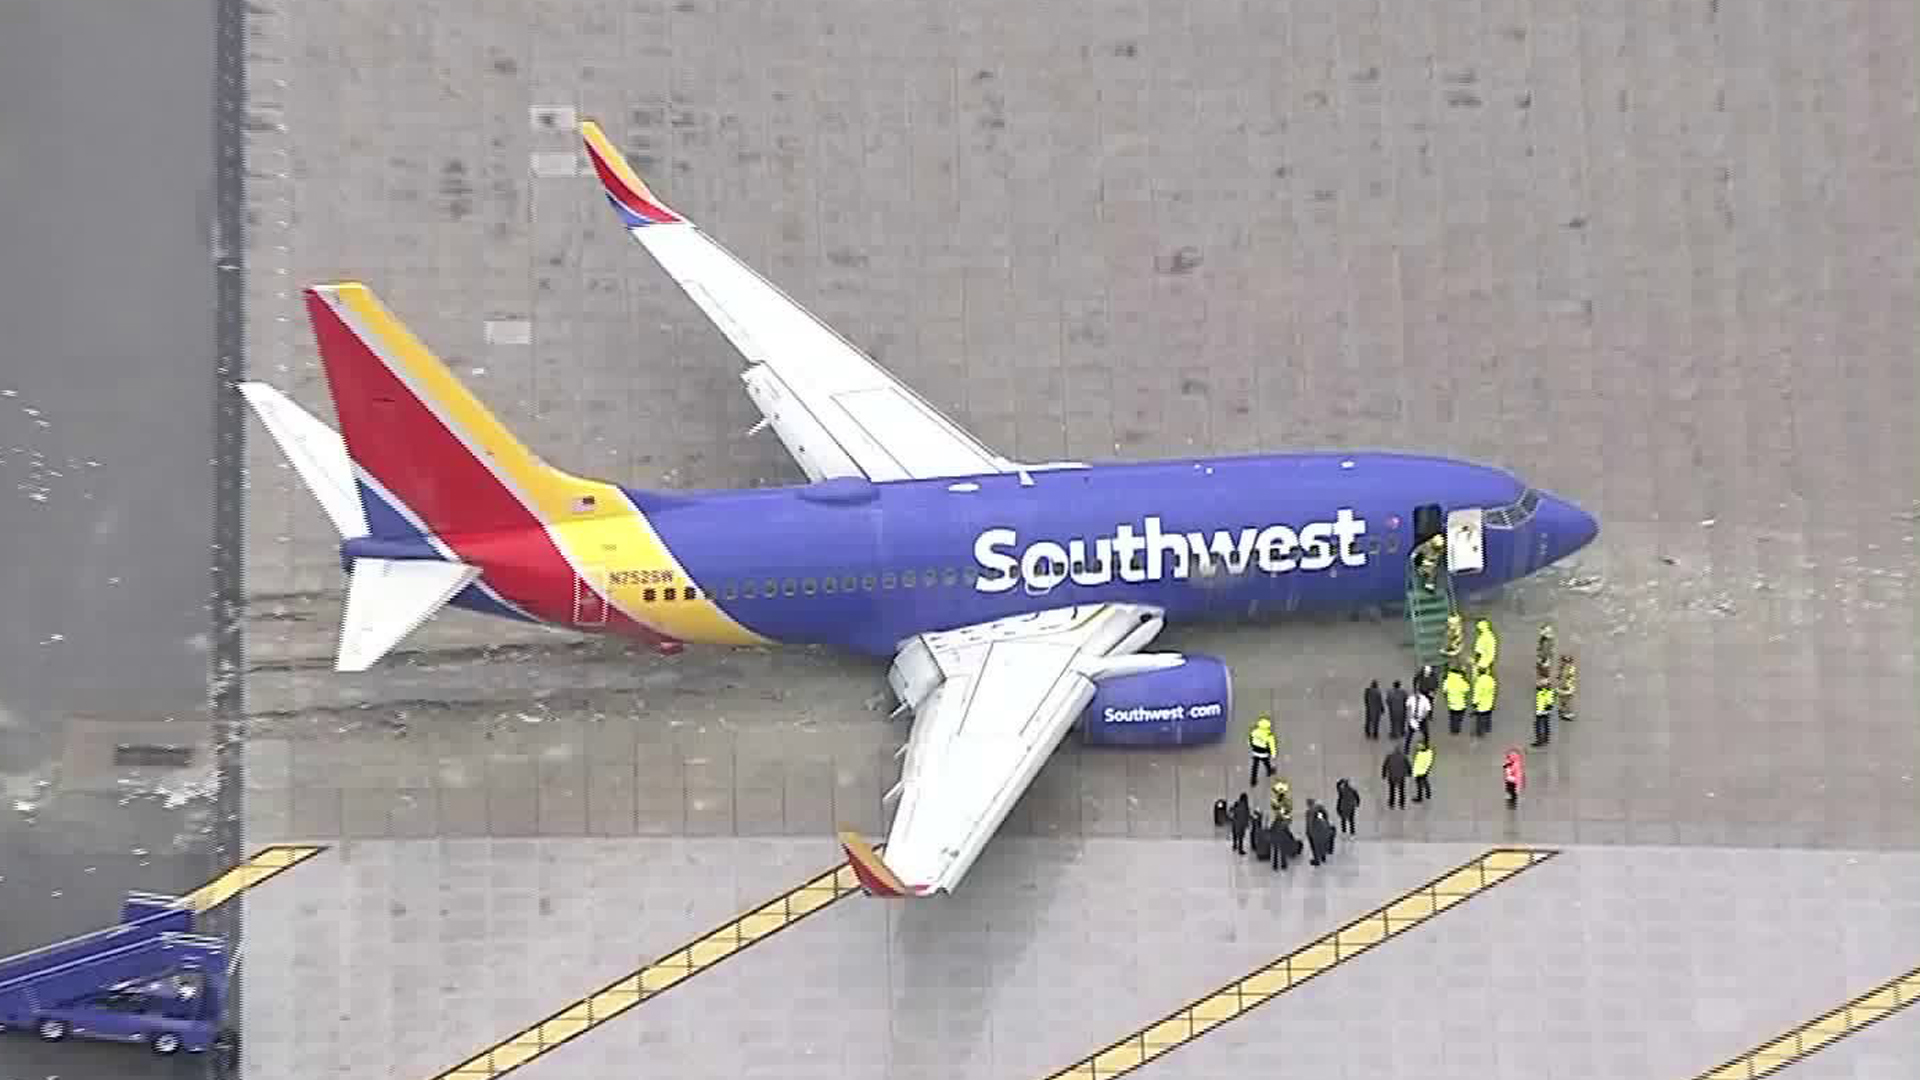 Aerial footage shows a Southwest Airline plane at Burbank Hollywood Airport after skidding off the runway on Dec. 6, 2018. (Credit: KTLA Sky 5)